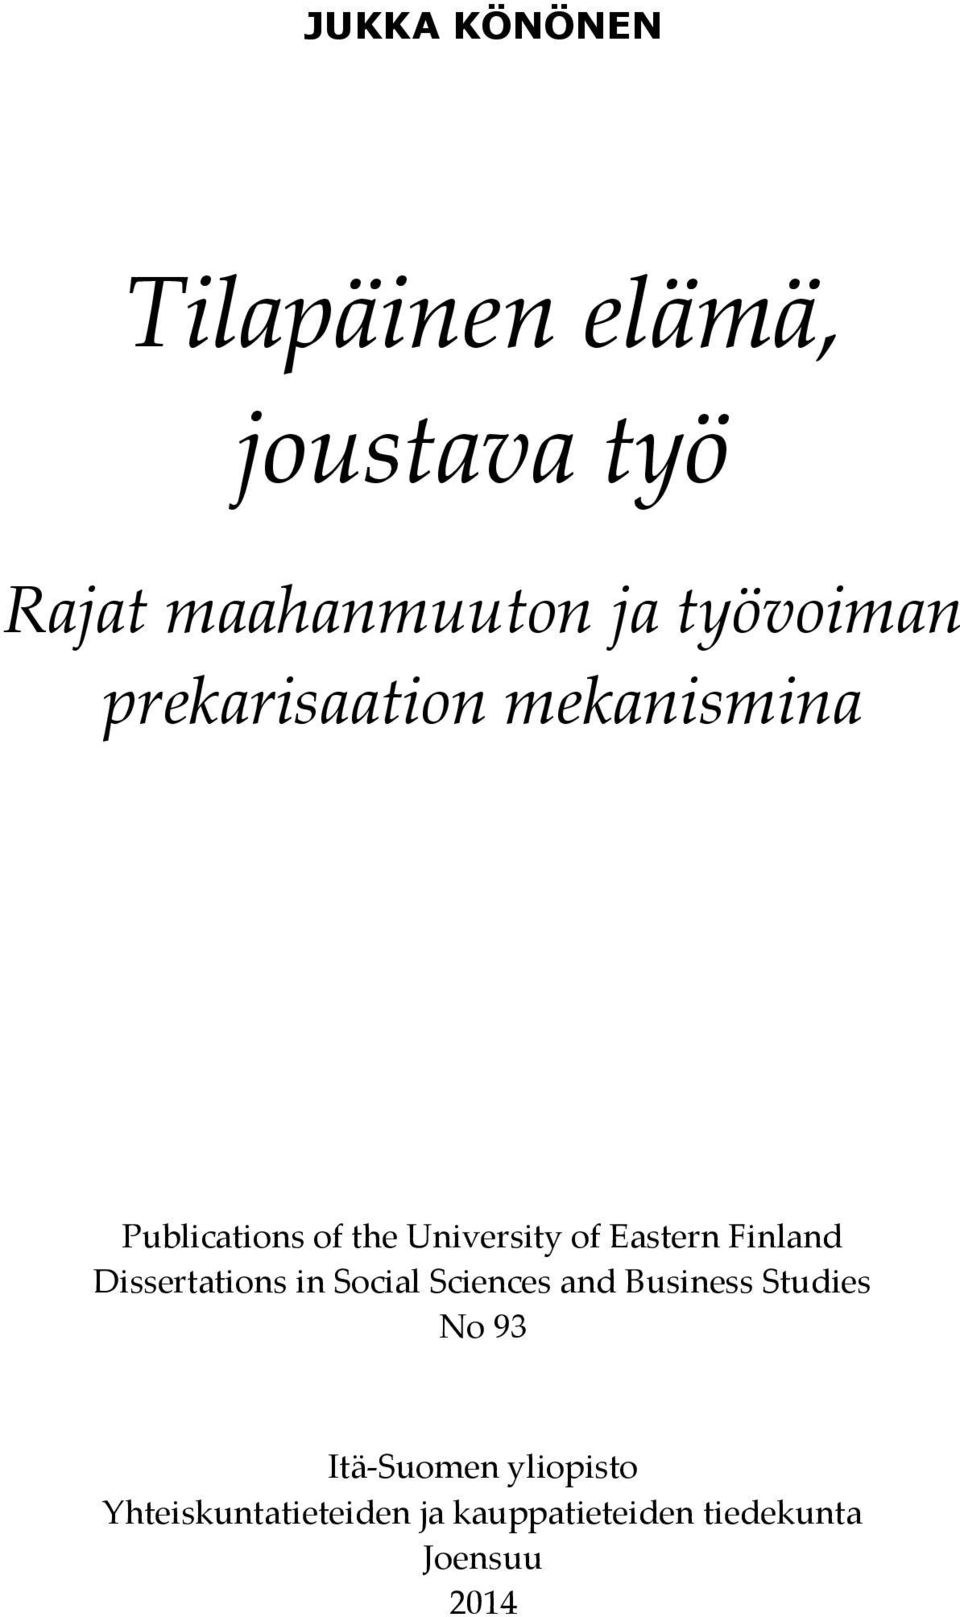 Eastern Finland Dissertations in Social Sciences and Business Studies No